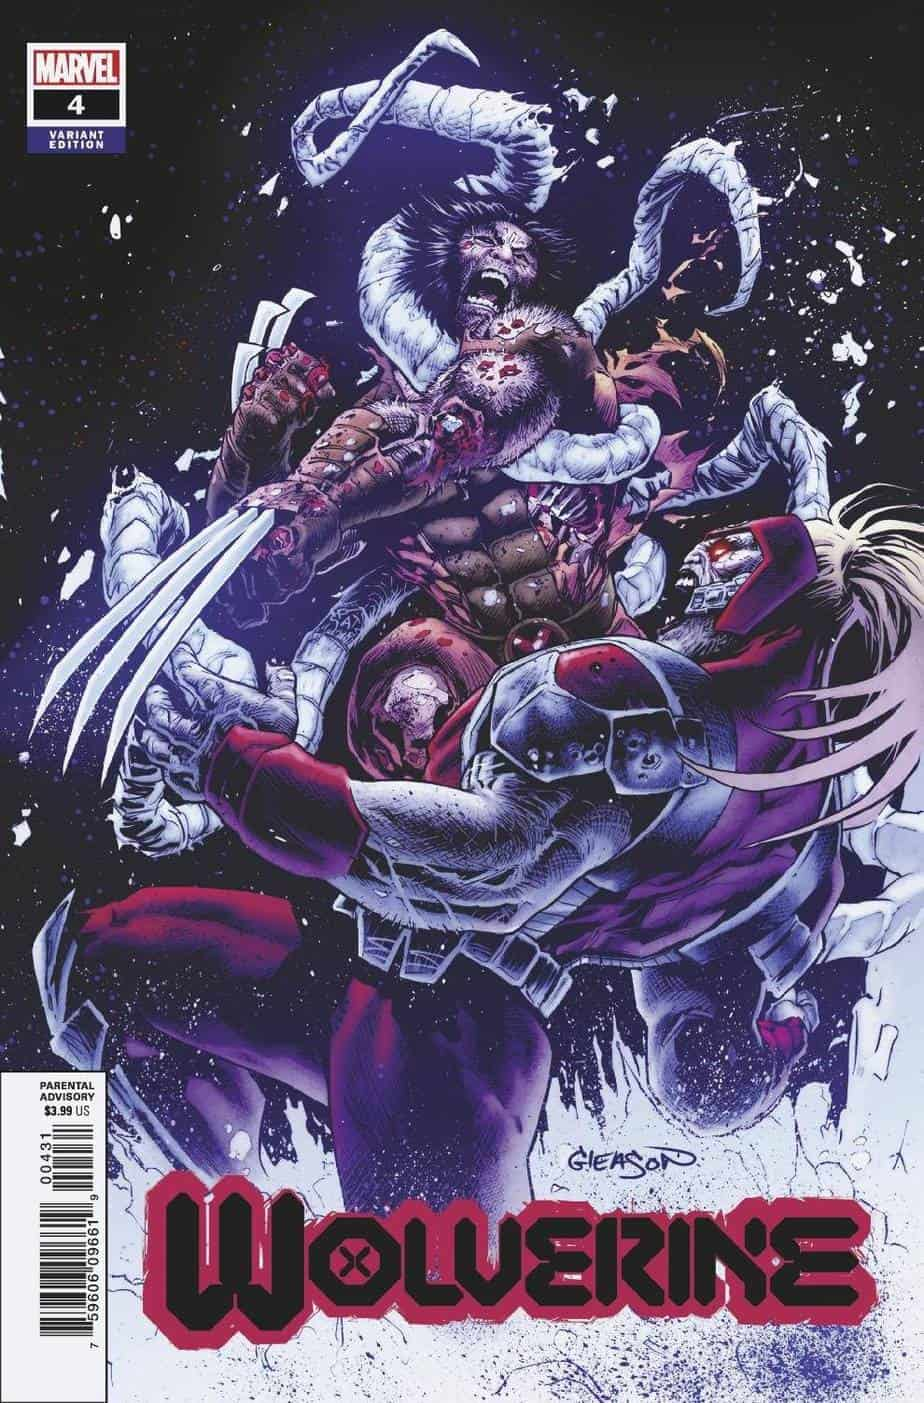 WOLVERINE #4 - Cover B